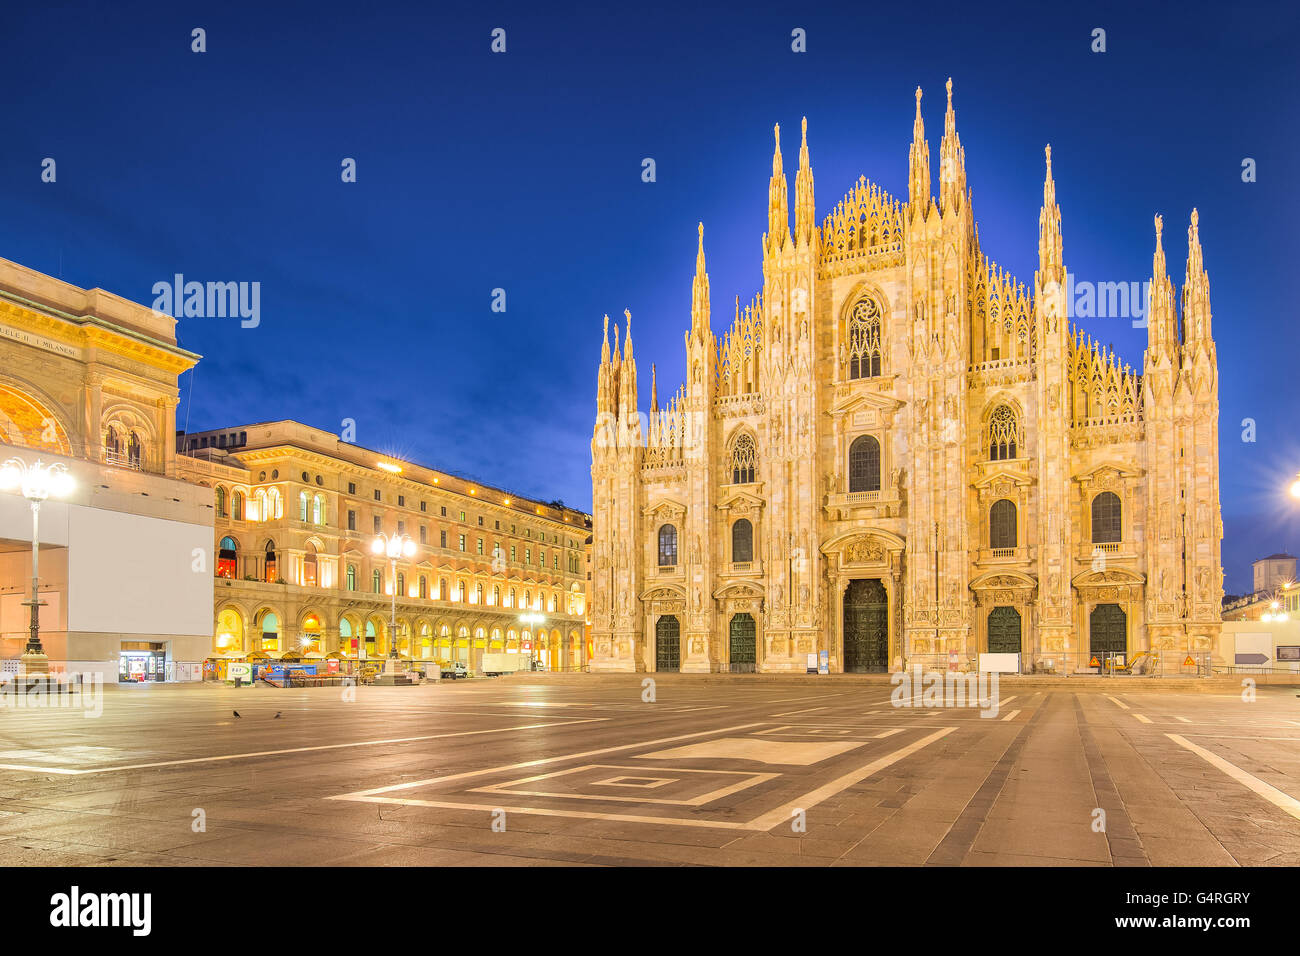 Night at the Duomo of Milan Cathedral in Italy. - Stock Image